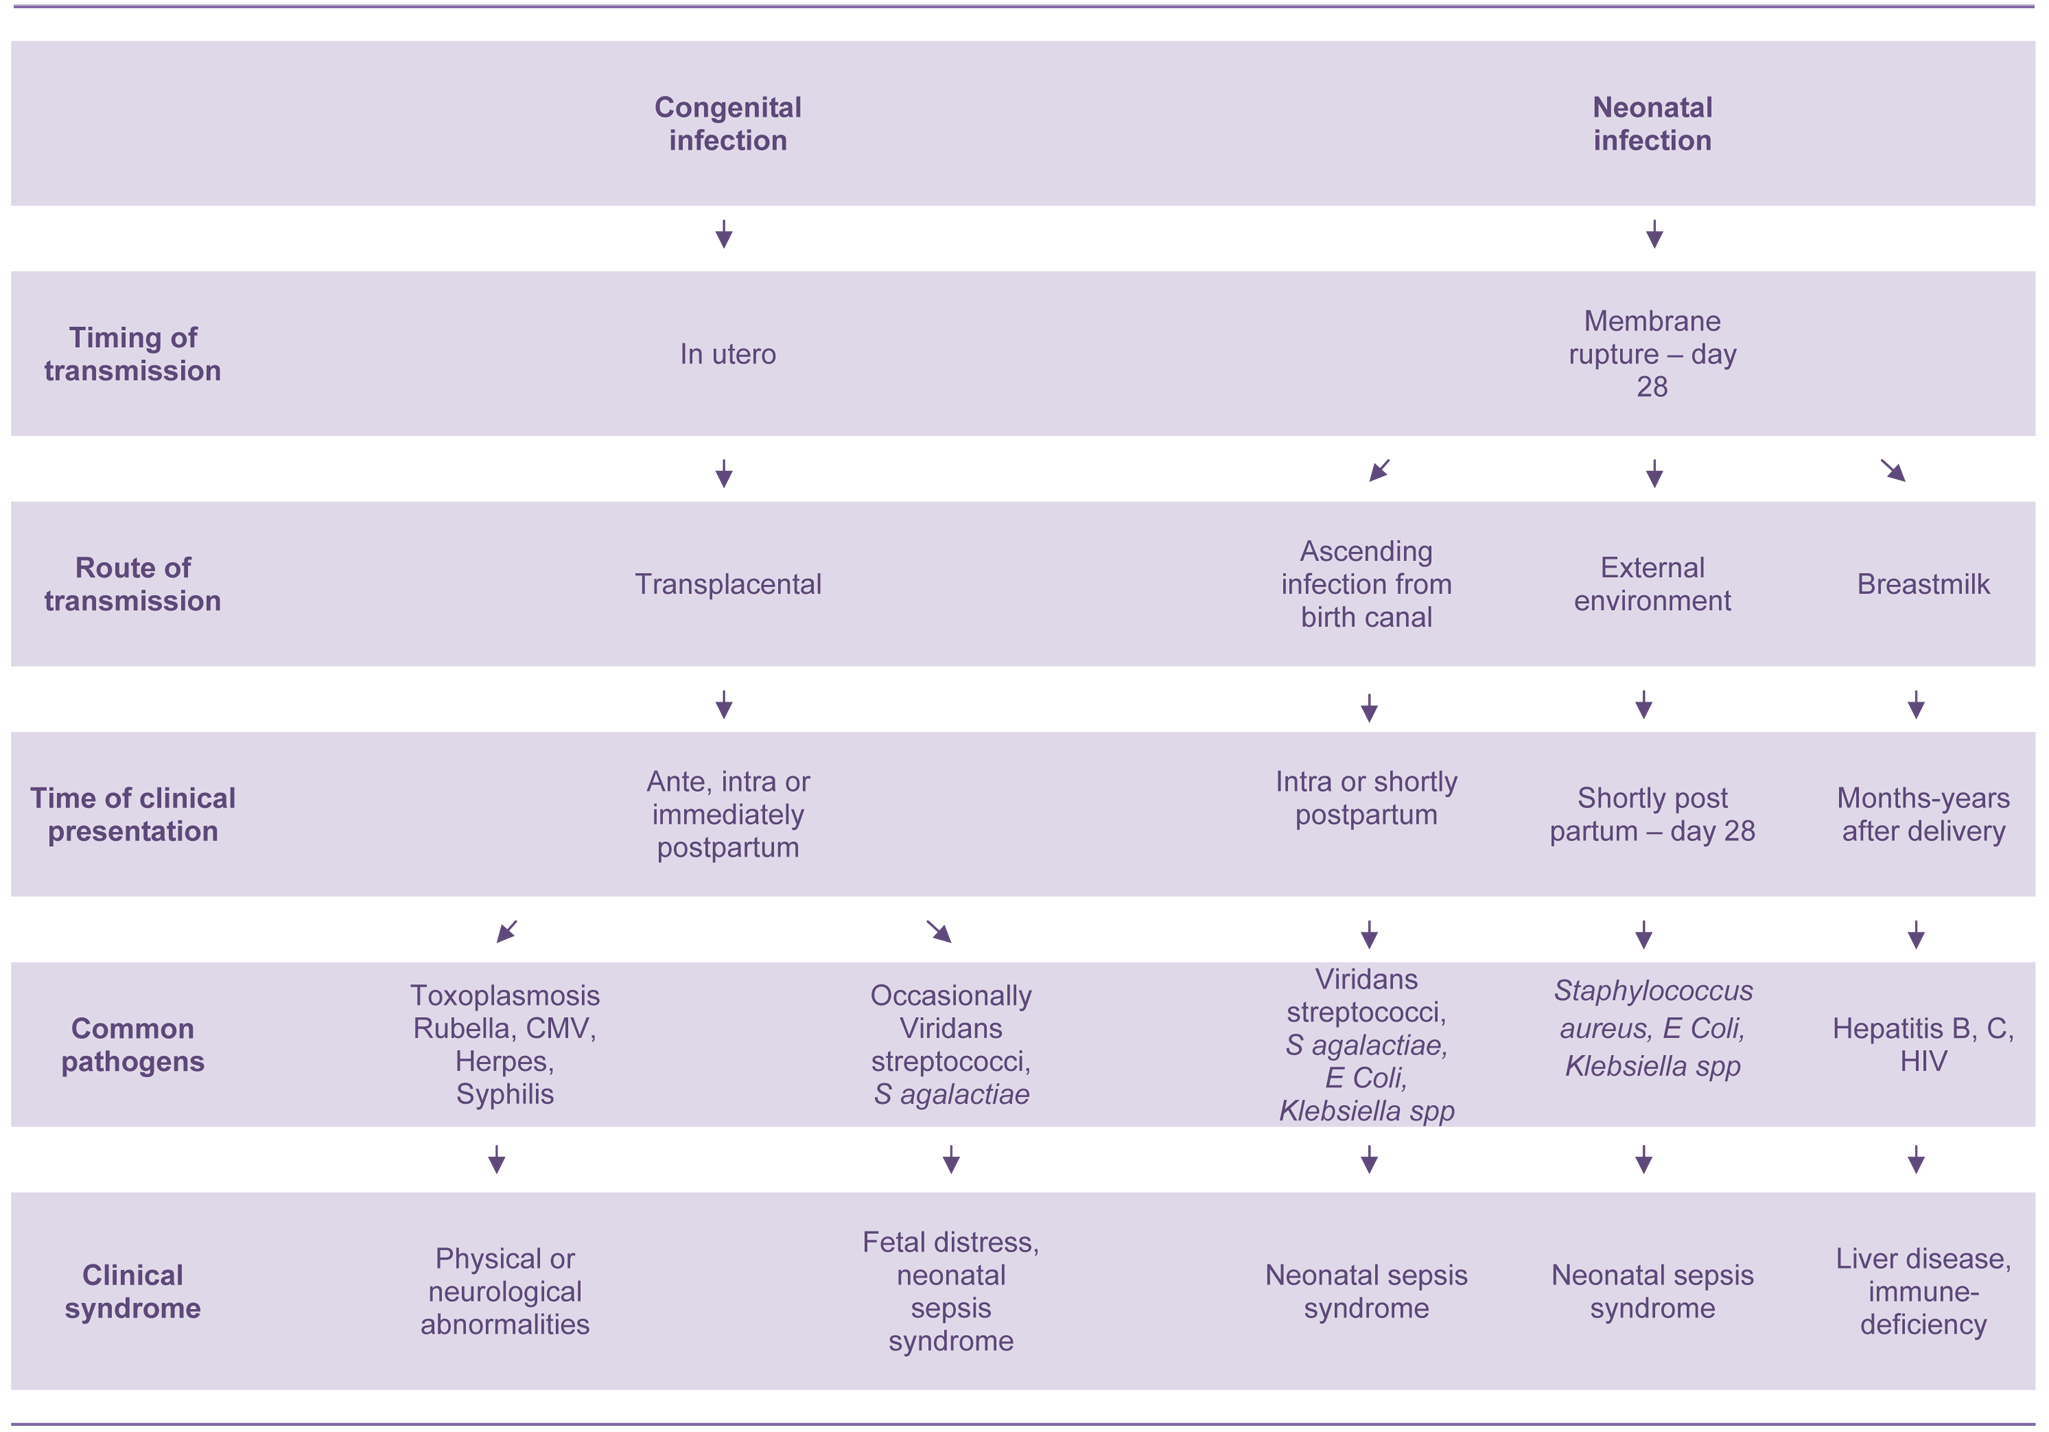 Pathogenesis of congenital and neonatal infections.